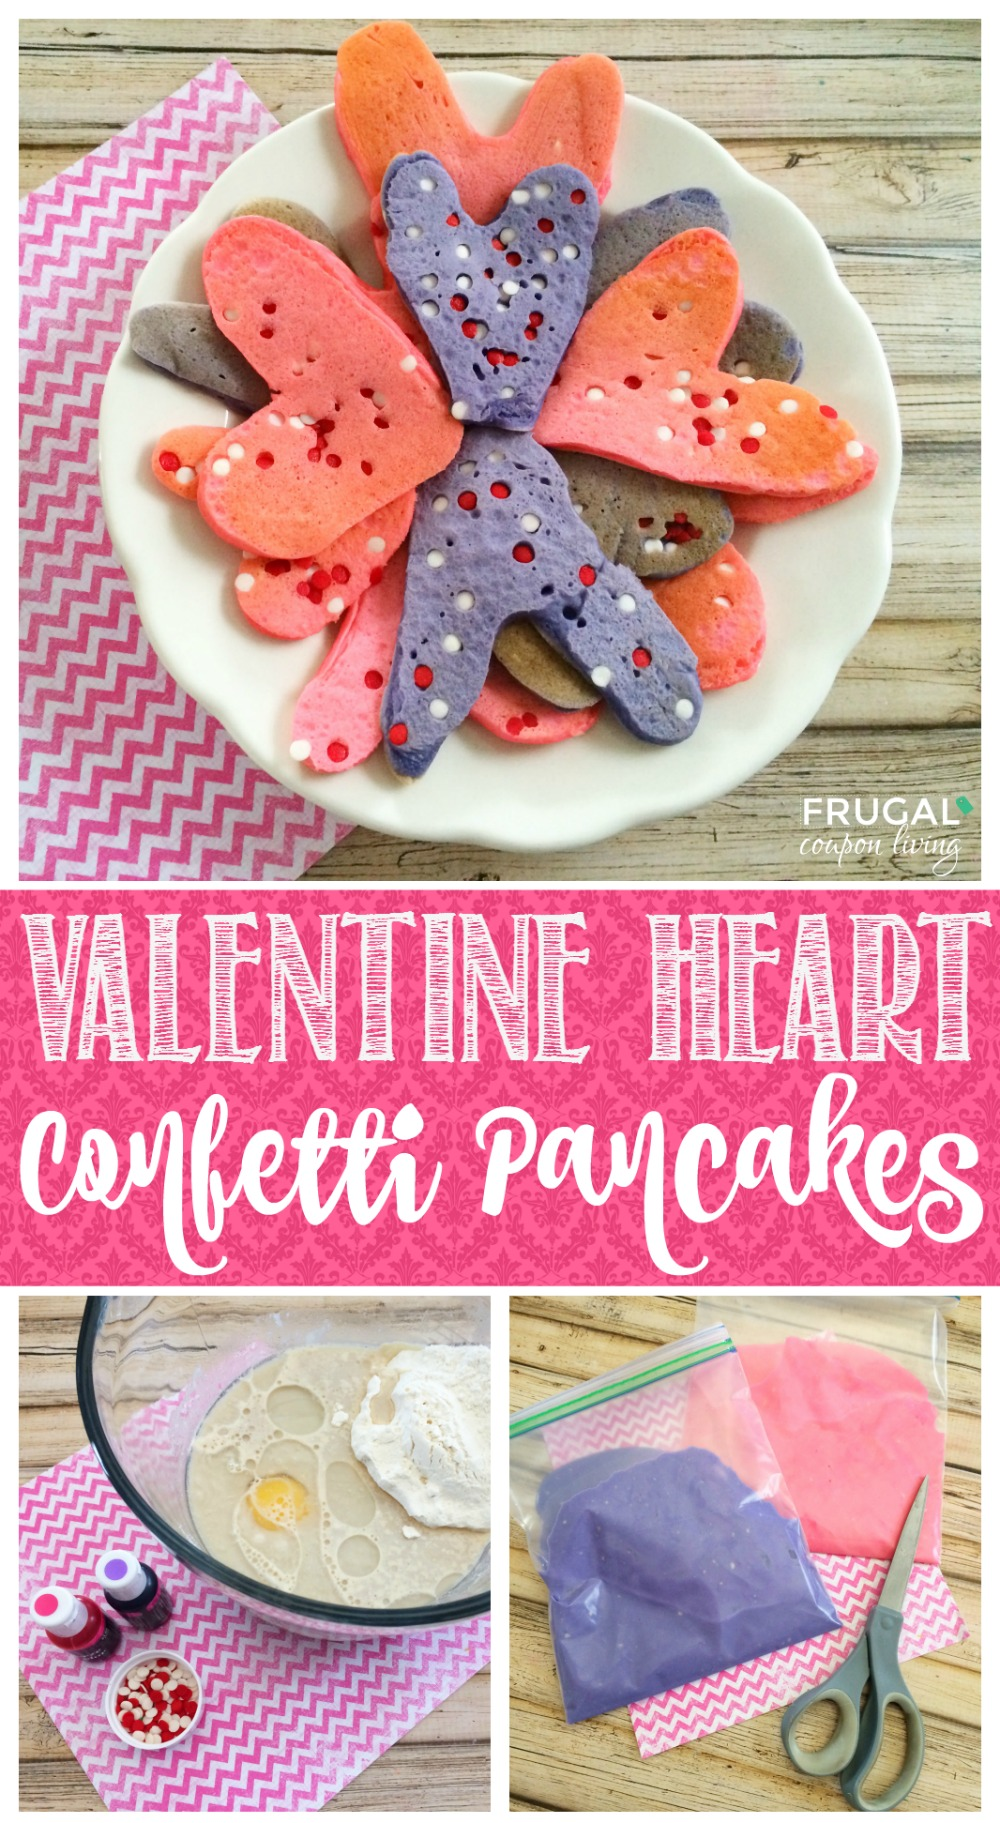 Valentine-Heart-Confetti-Pancakes-Collage-short-frugal-coupon-living